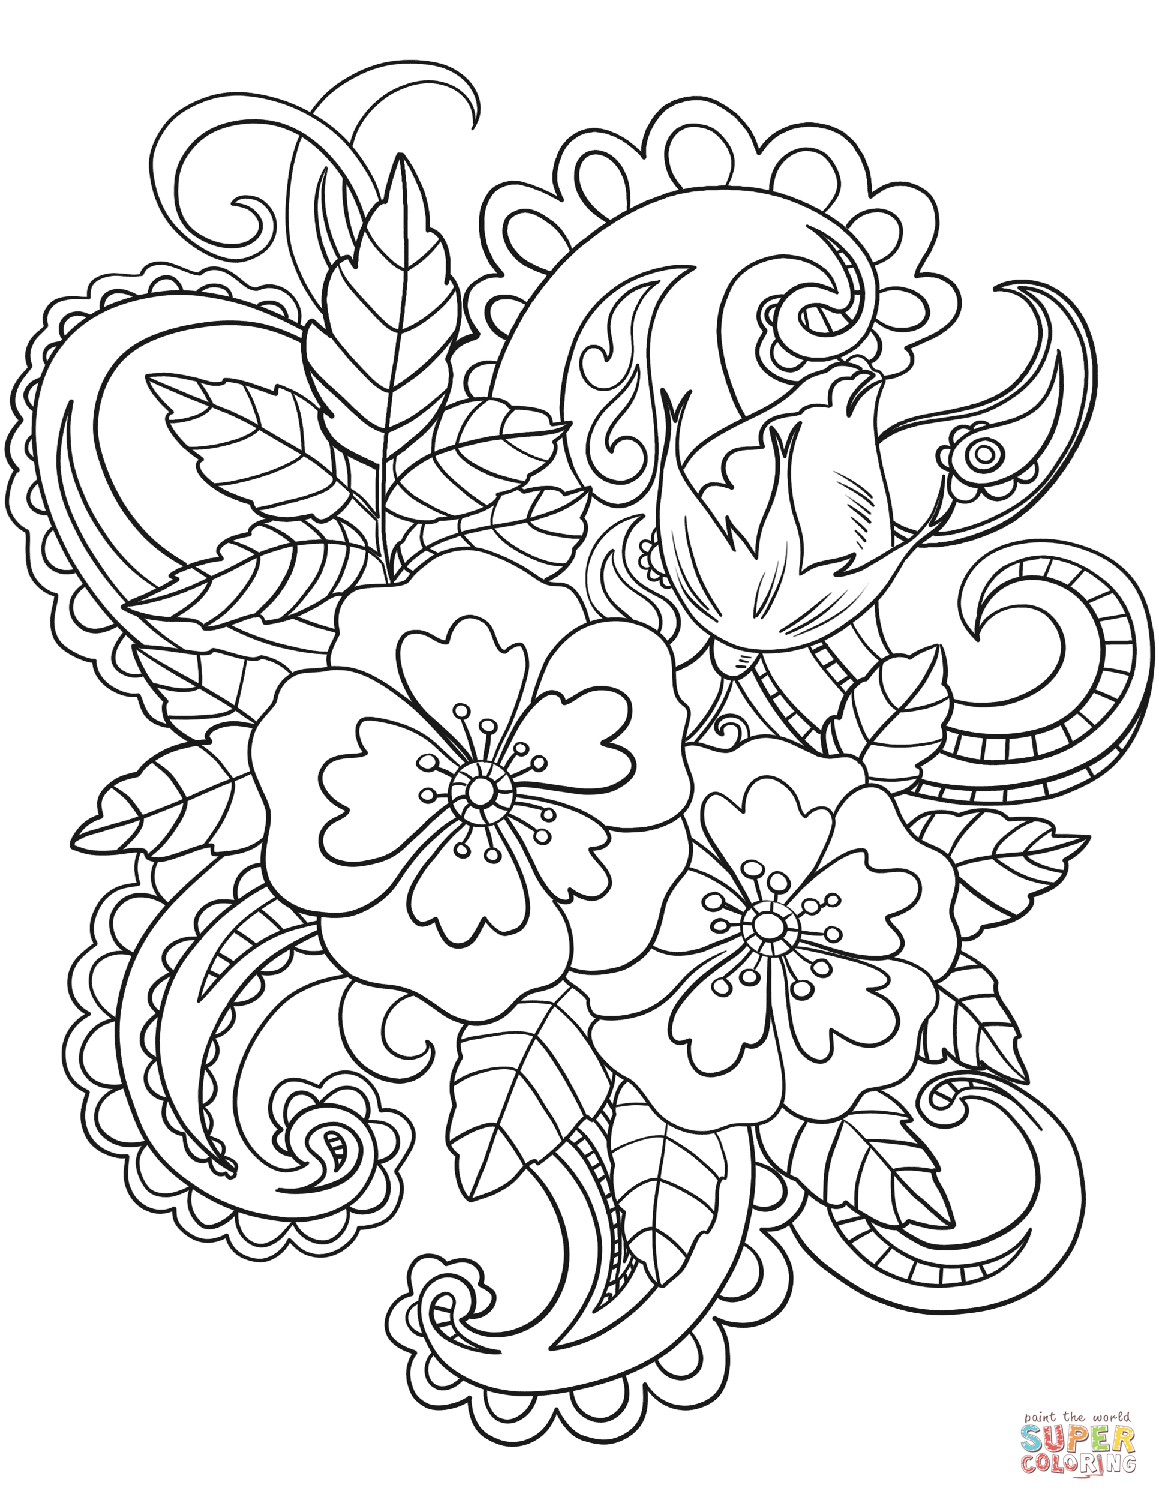 Hibiscus flower and paisley clipart black and white svg black and white Flowers with Paisley Patterns coloring page | Free Printable ... svg black and white